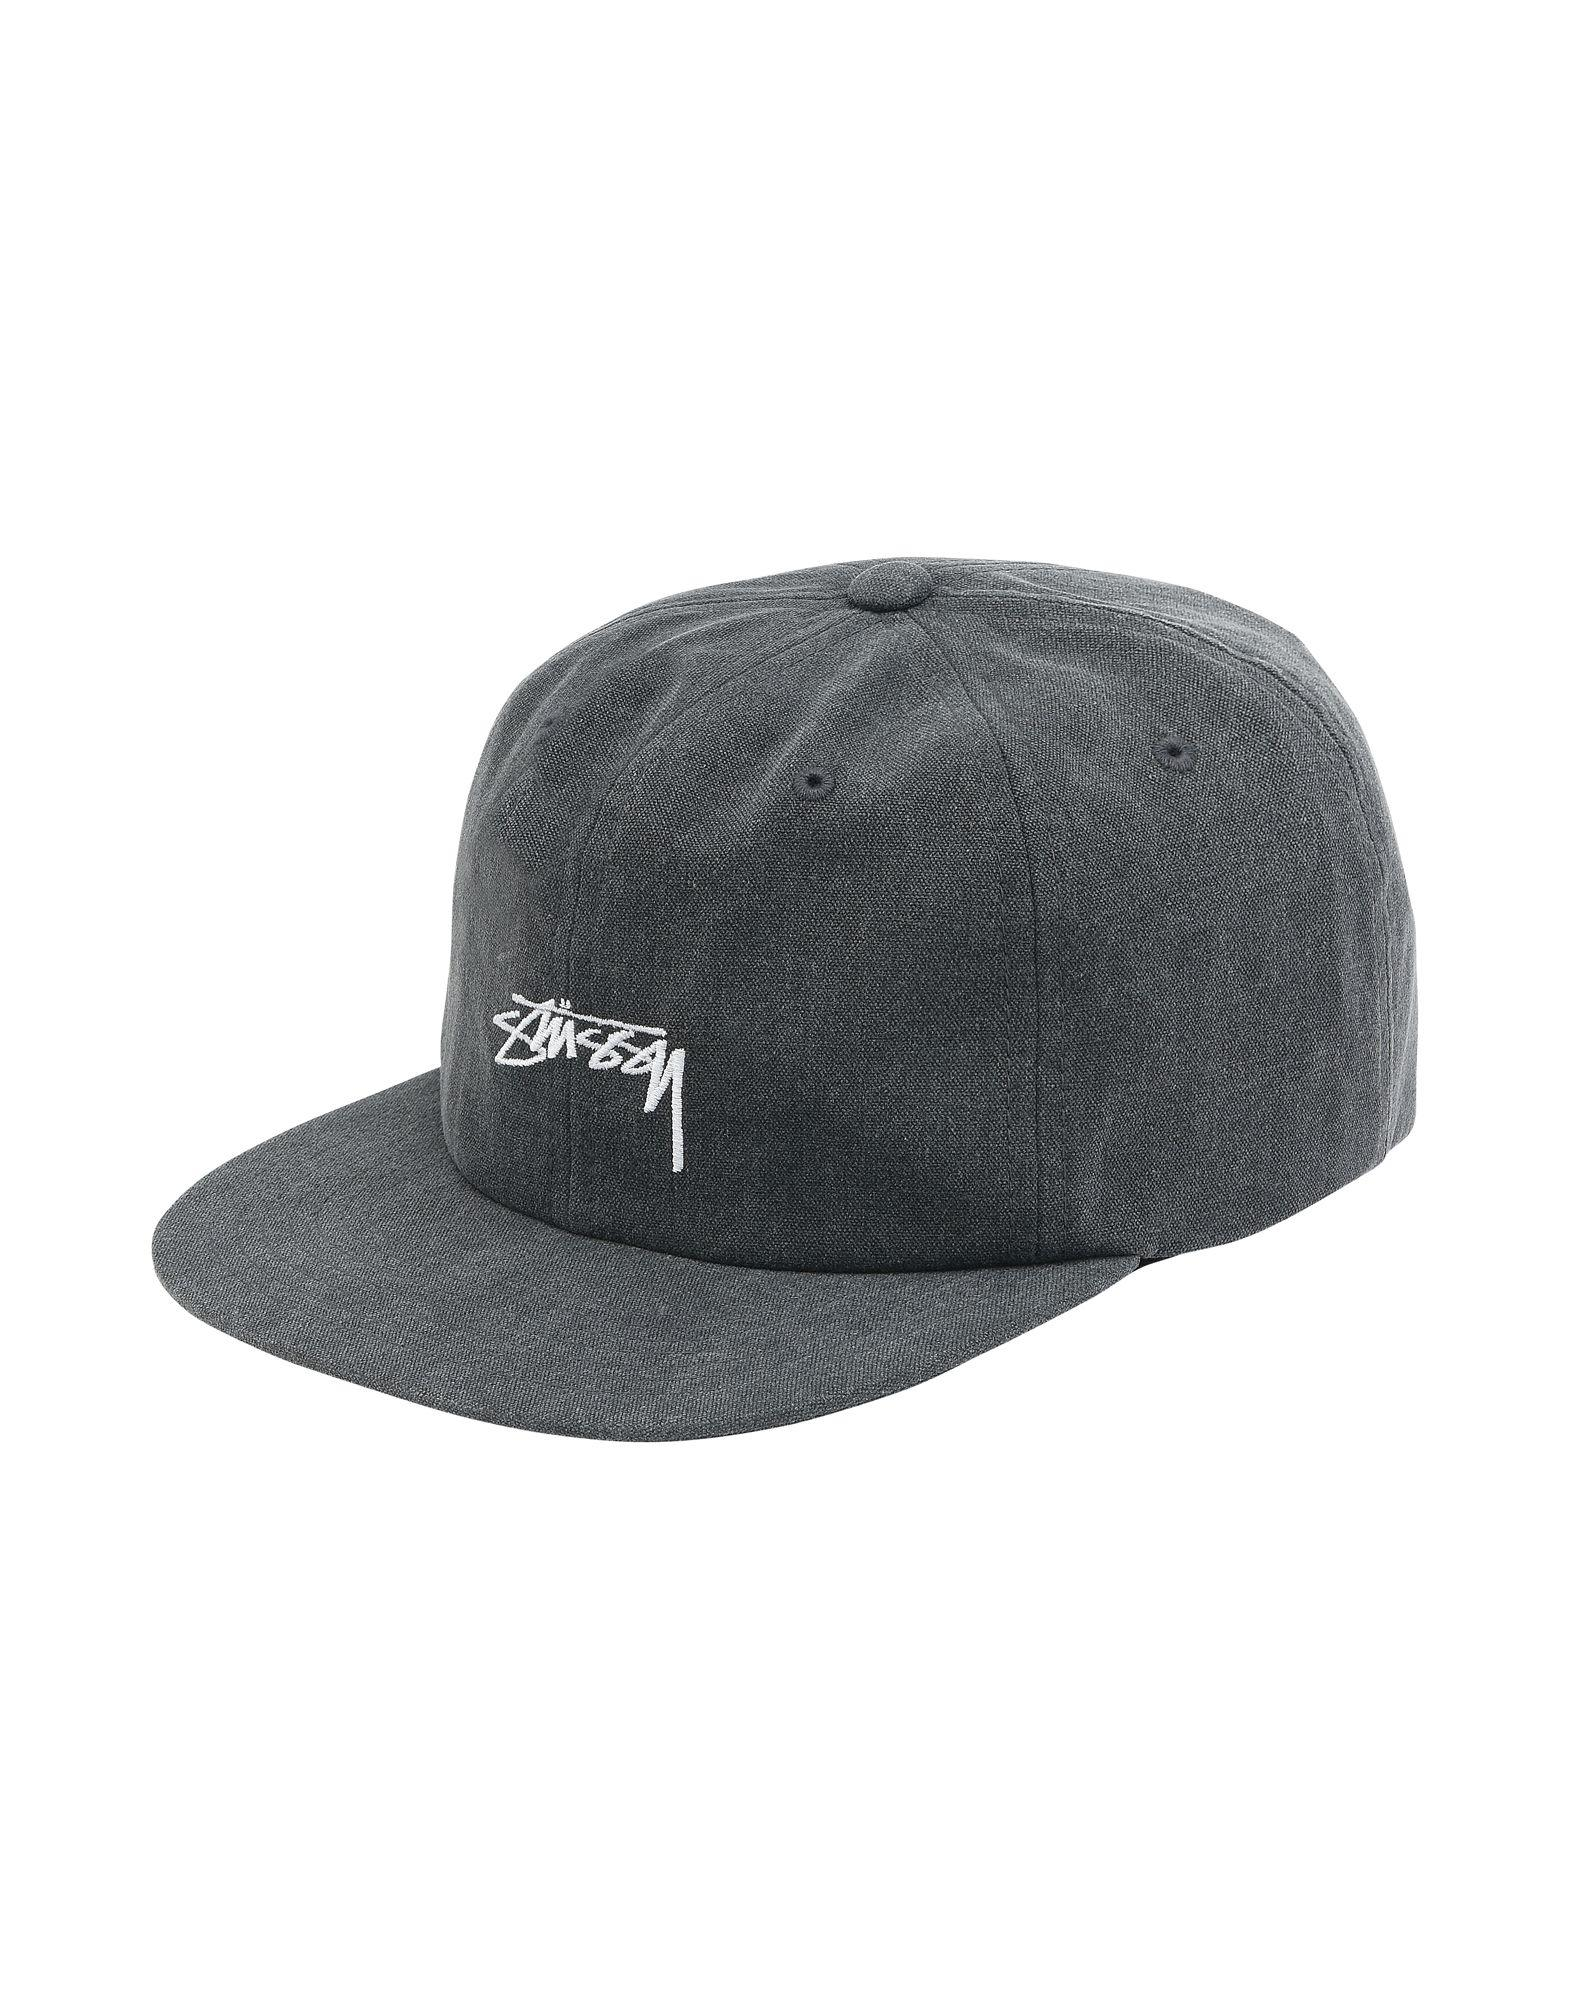 ef26a365c0c99 Stussy Hat in Gray for Men - Lyst